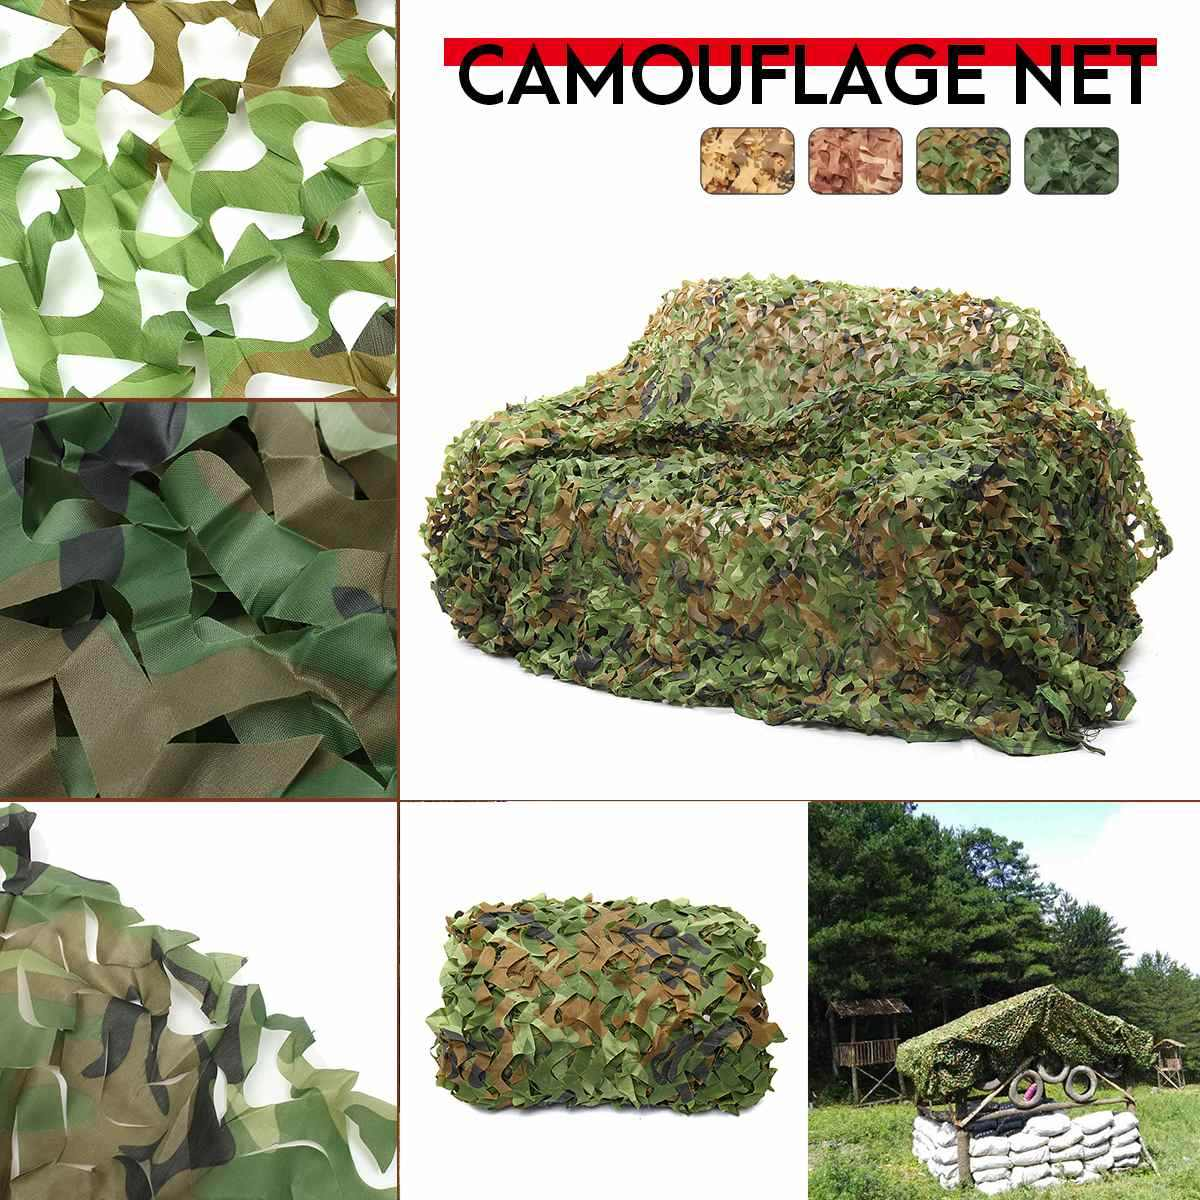 2x3 2x6 2x8 3x3 3x4 3x5 3x6 4x6 150D 120g Polyester Oxford Fabric PET Fibre Camouflage Camo Net Netting Hunting Sun Shade Car Co